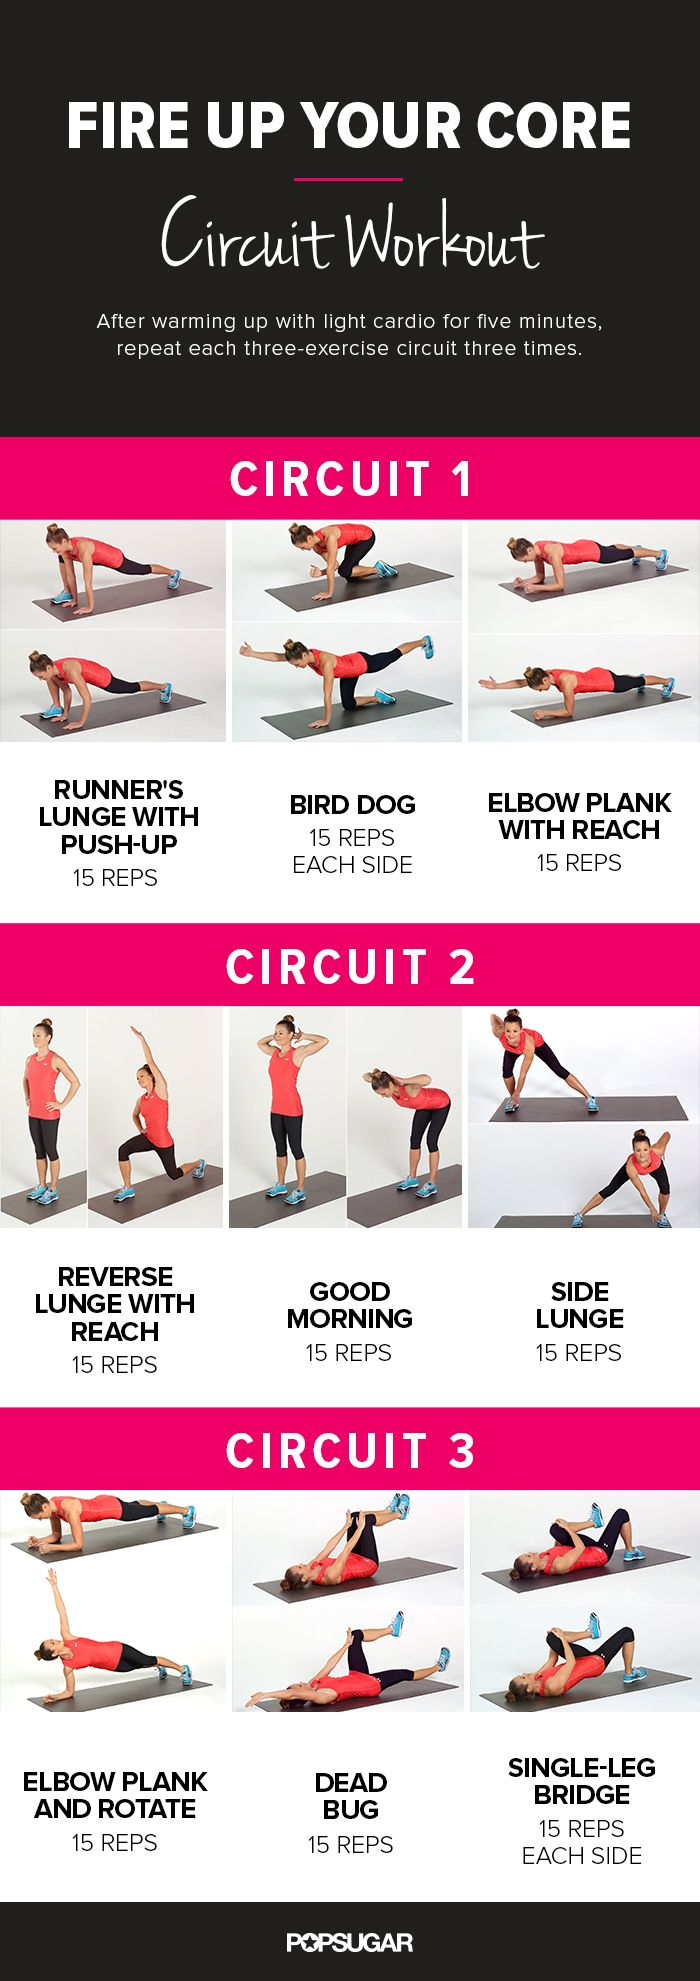 100 Best Circuit Training Workouts Images Exercise Rh Com Back With Dumbbells Home Workout Routines